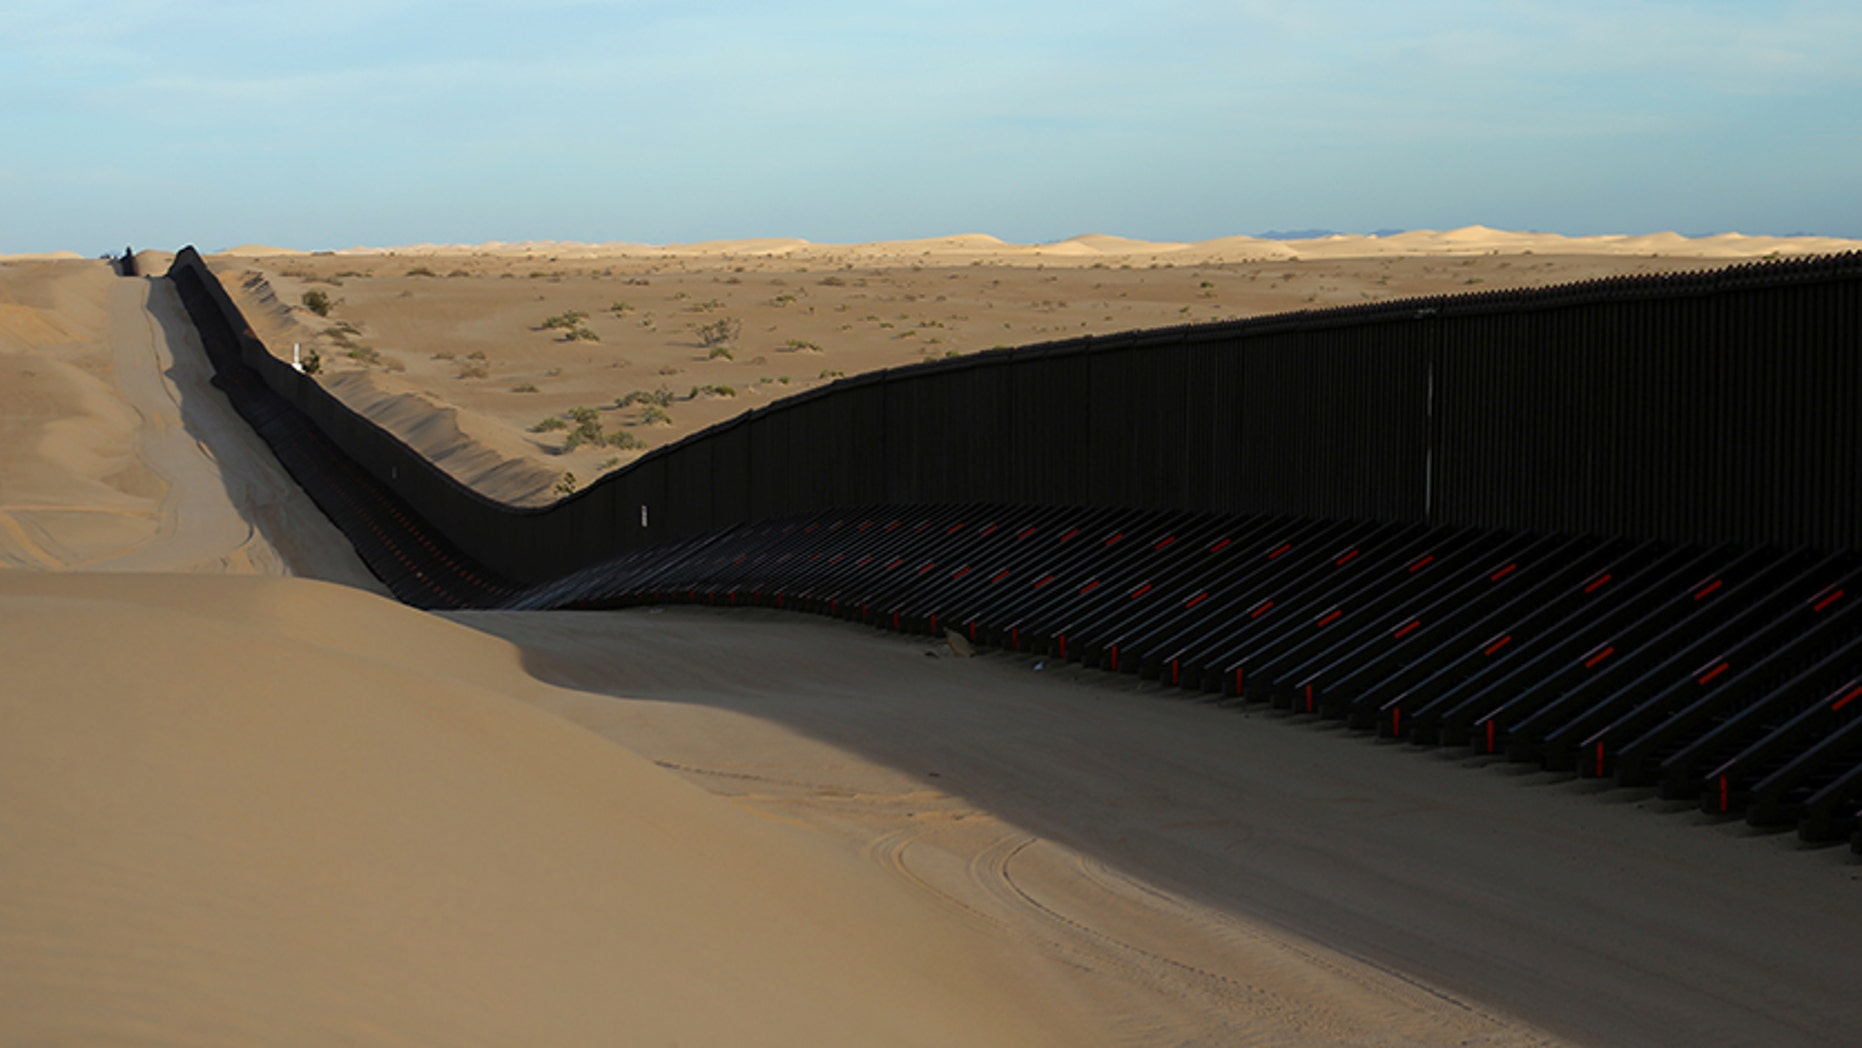 The border fence between Mexico and the United States is pictured near Calexico, California, in February 2017.